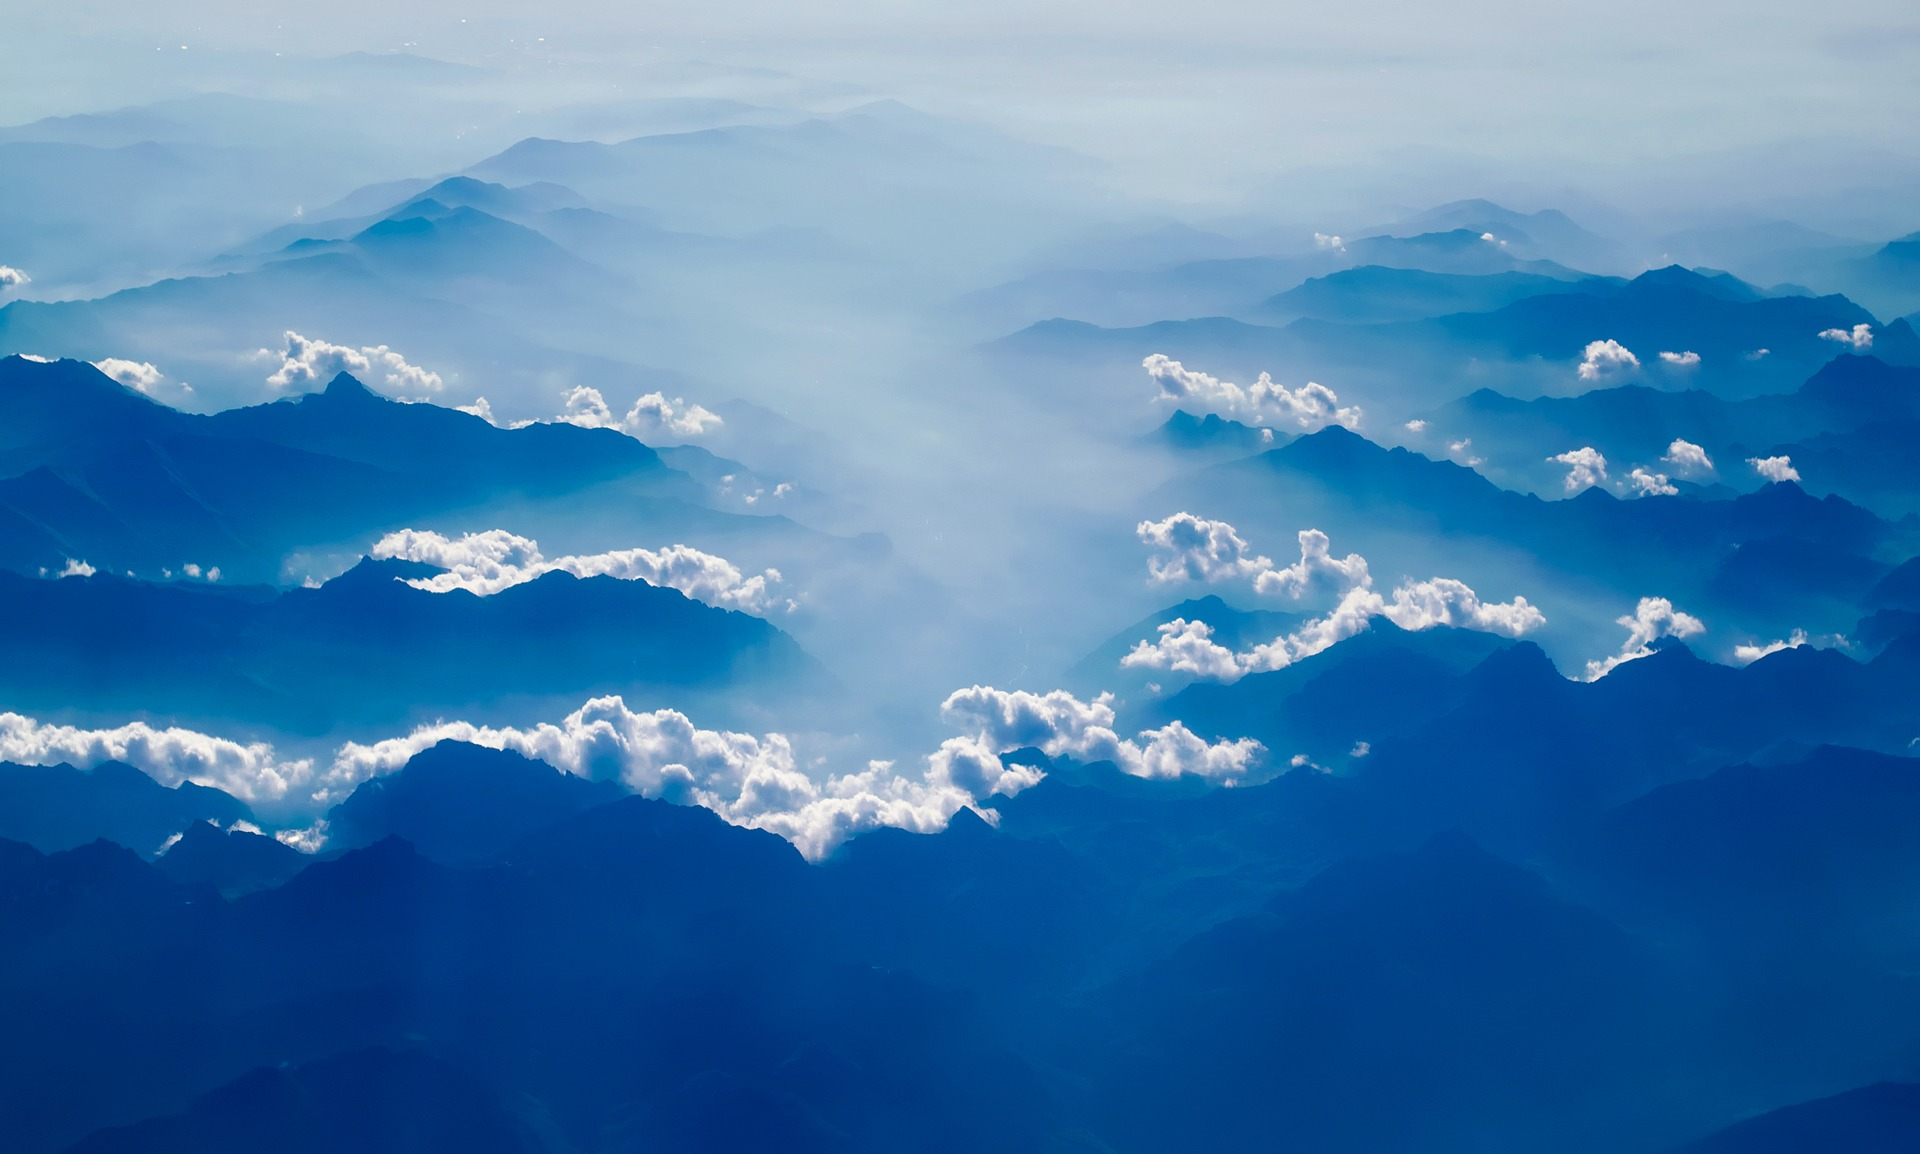 photo of blue mountains peeking through clouds